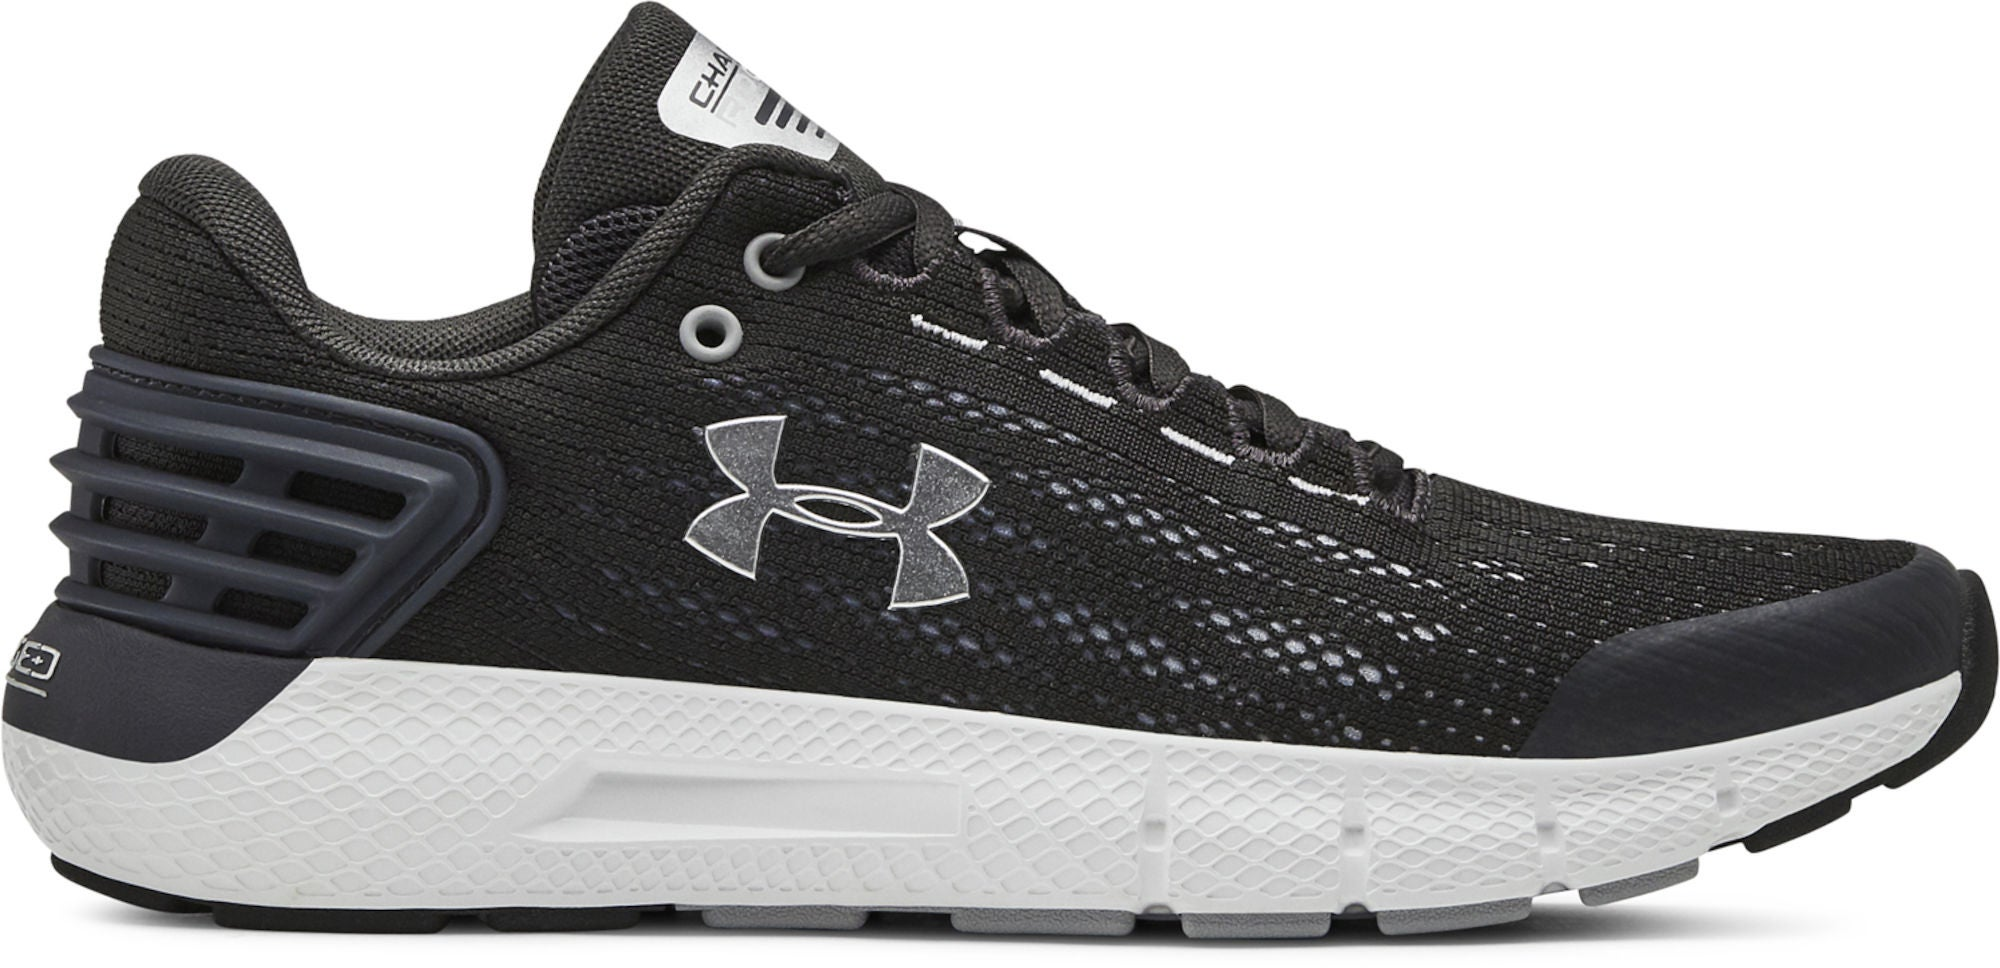 Under Armour BGS Charged Rogue Träningsskor, White 40